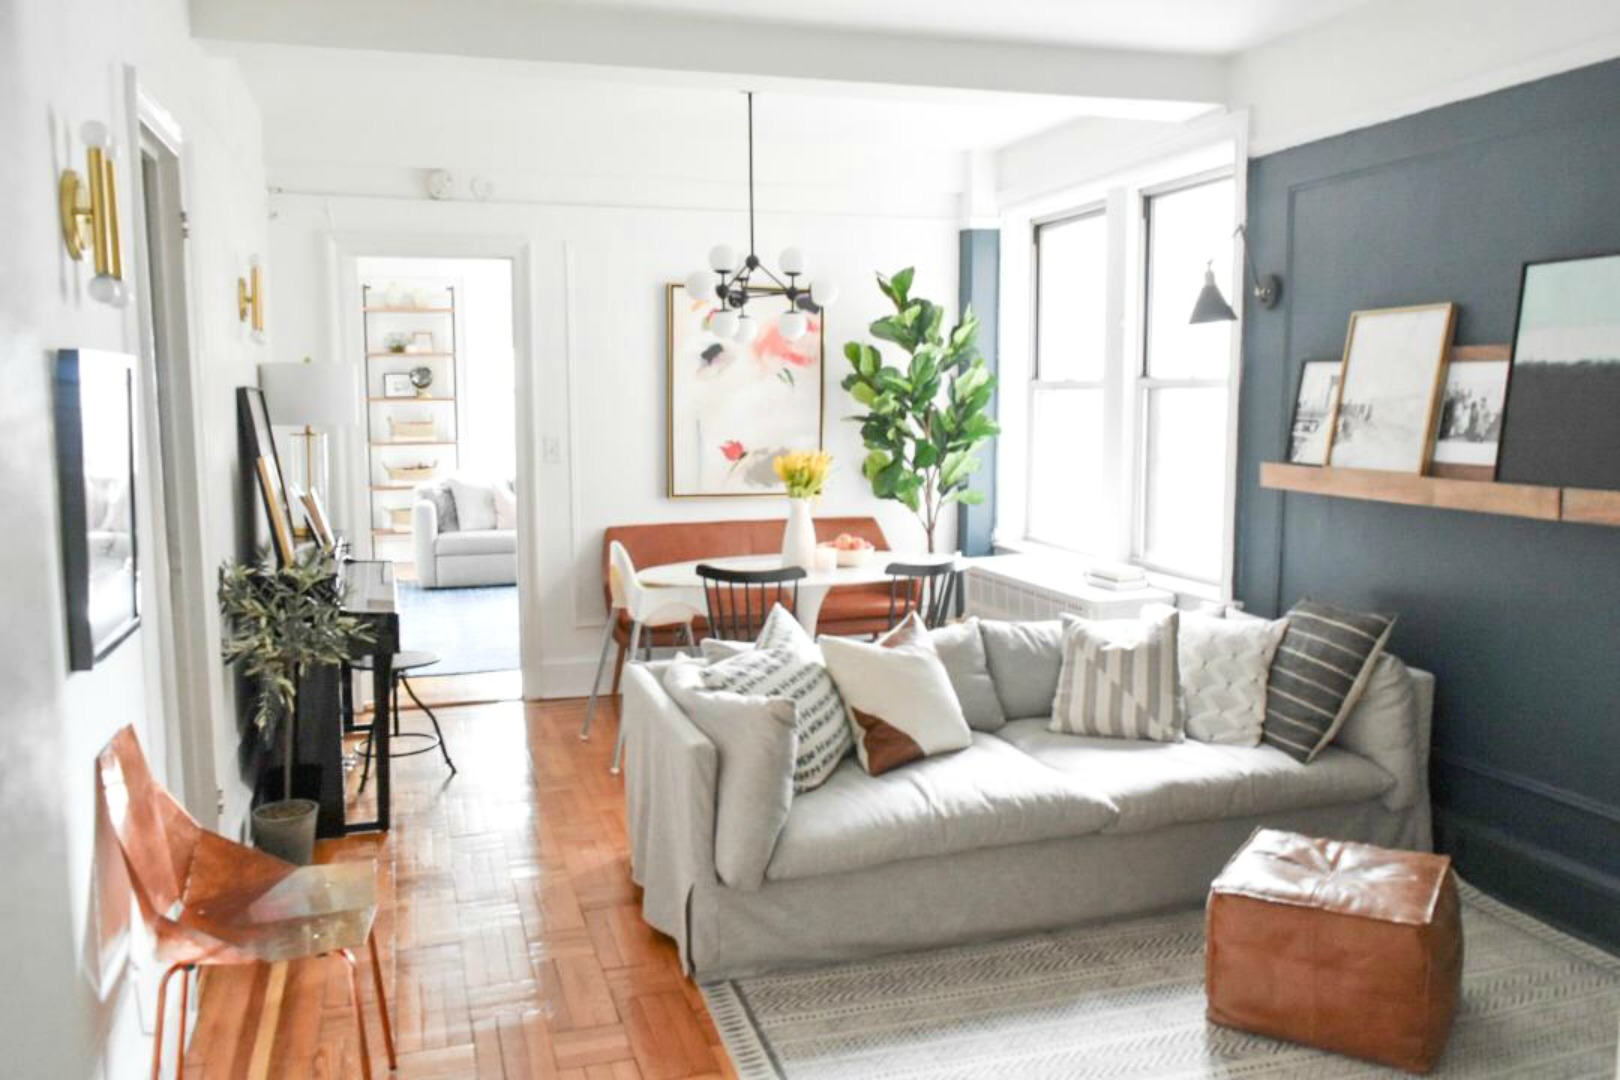 Small Space Living Series- New York City Apartment With